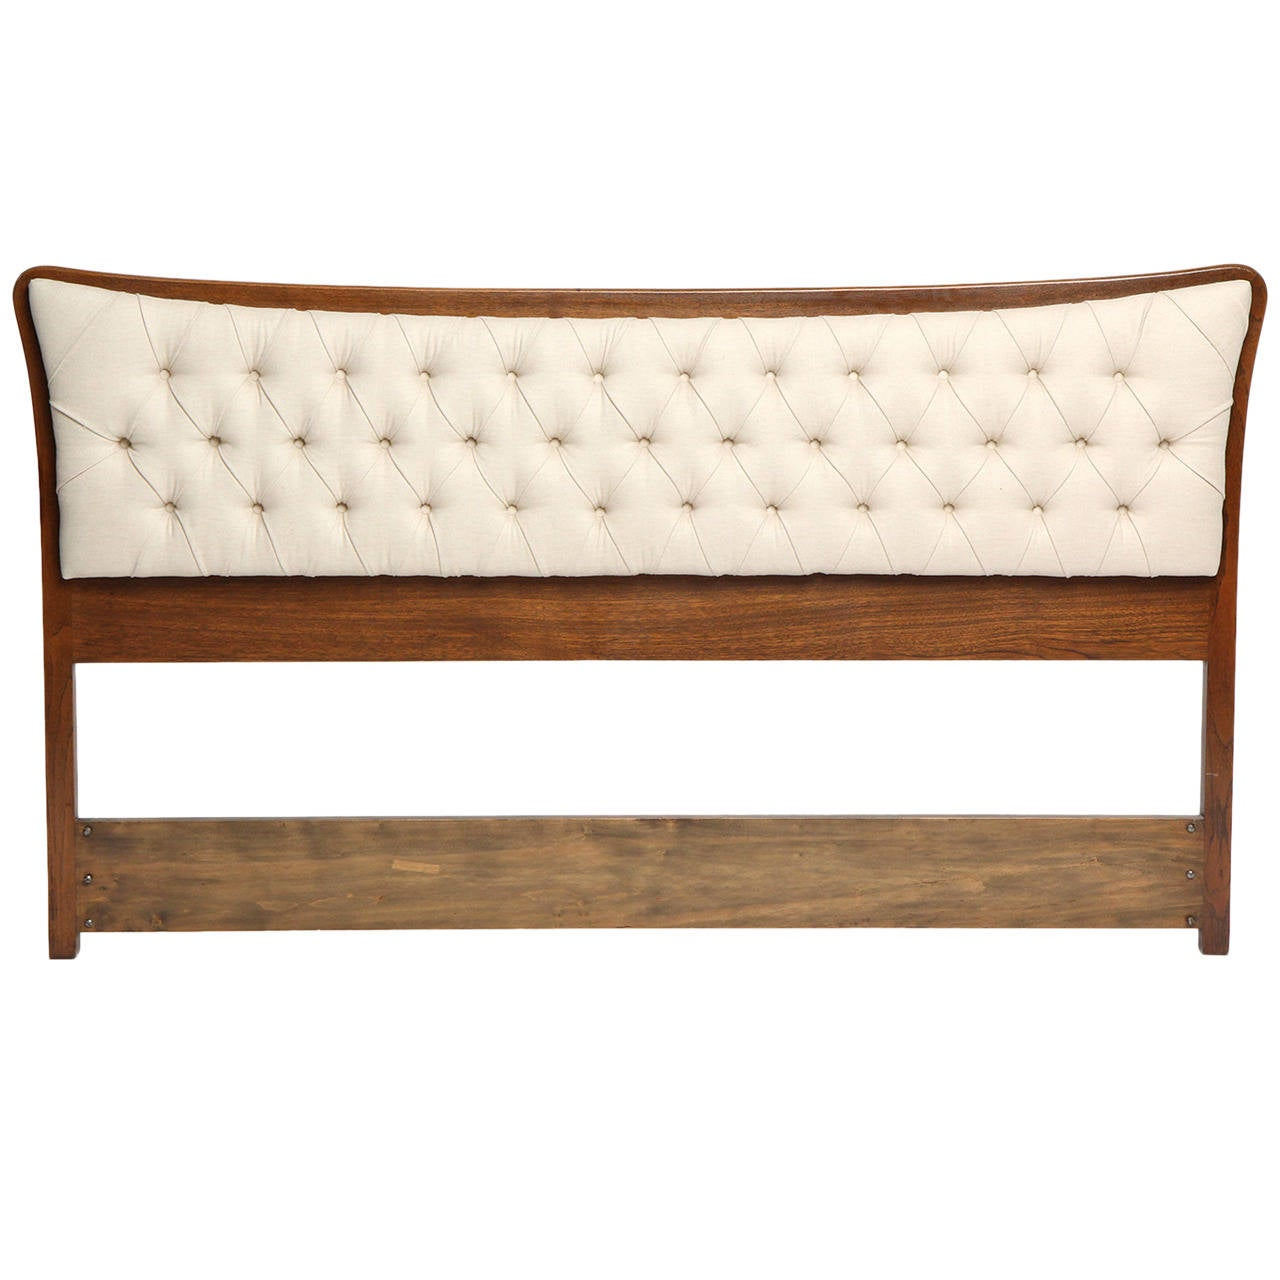 Tufted Headboard by Edward Wormley